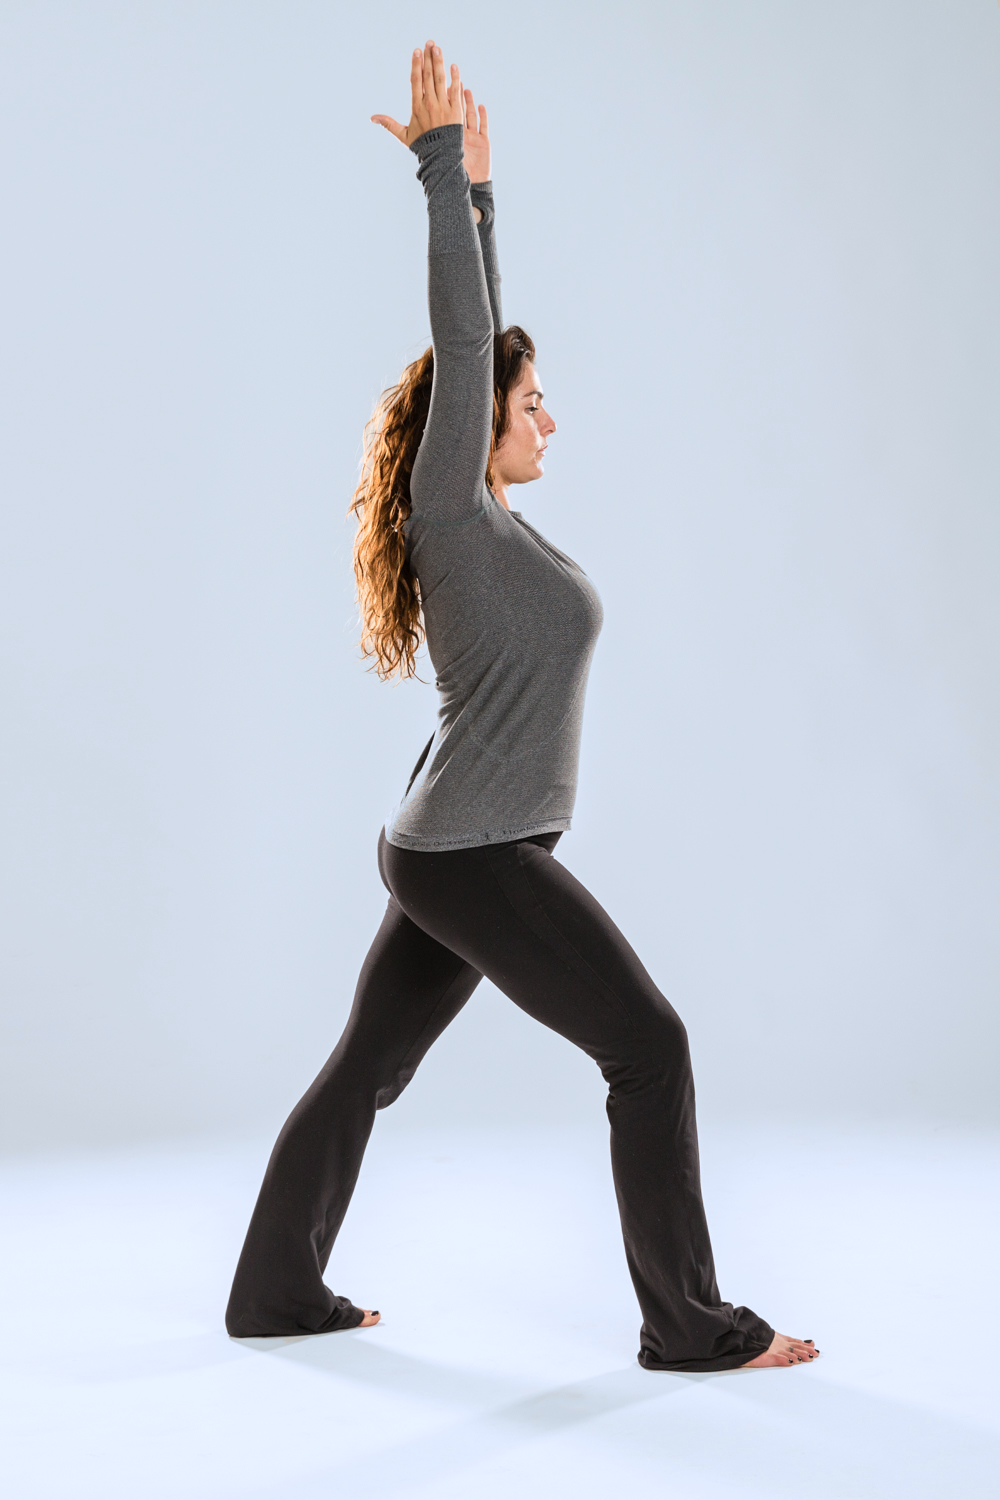 Amy_Graves-yoga-112-Edit